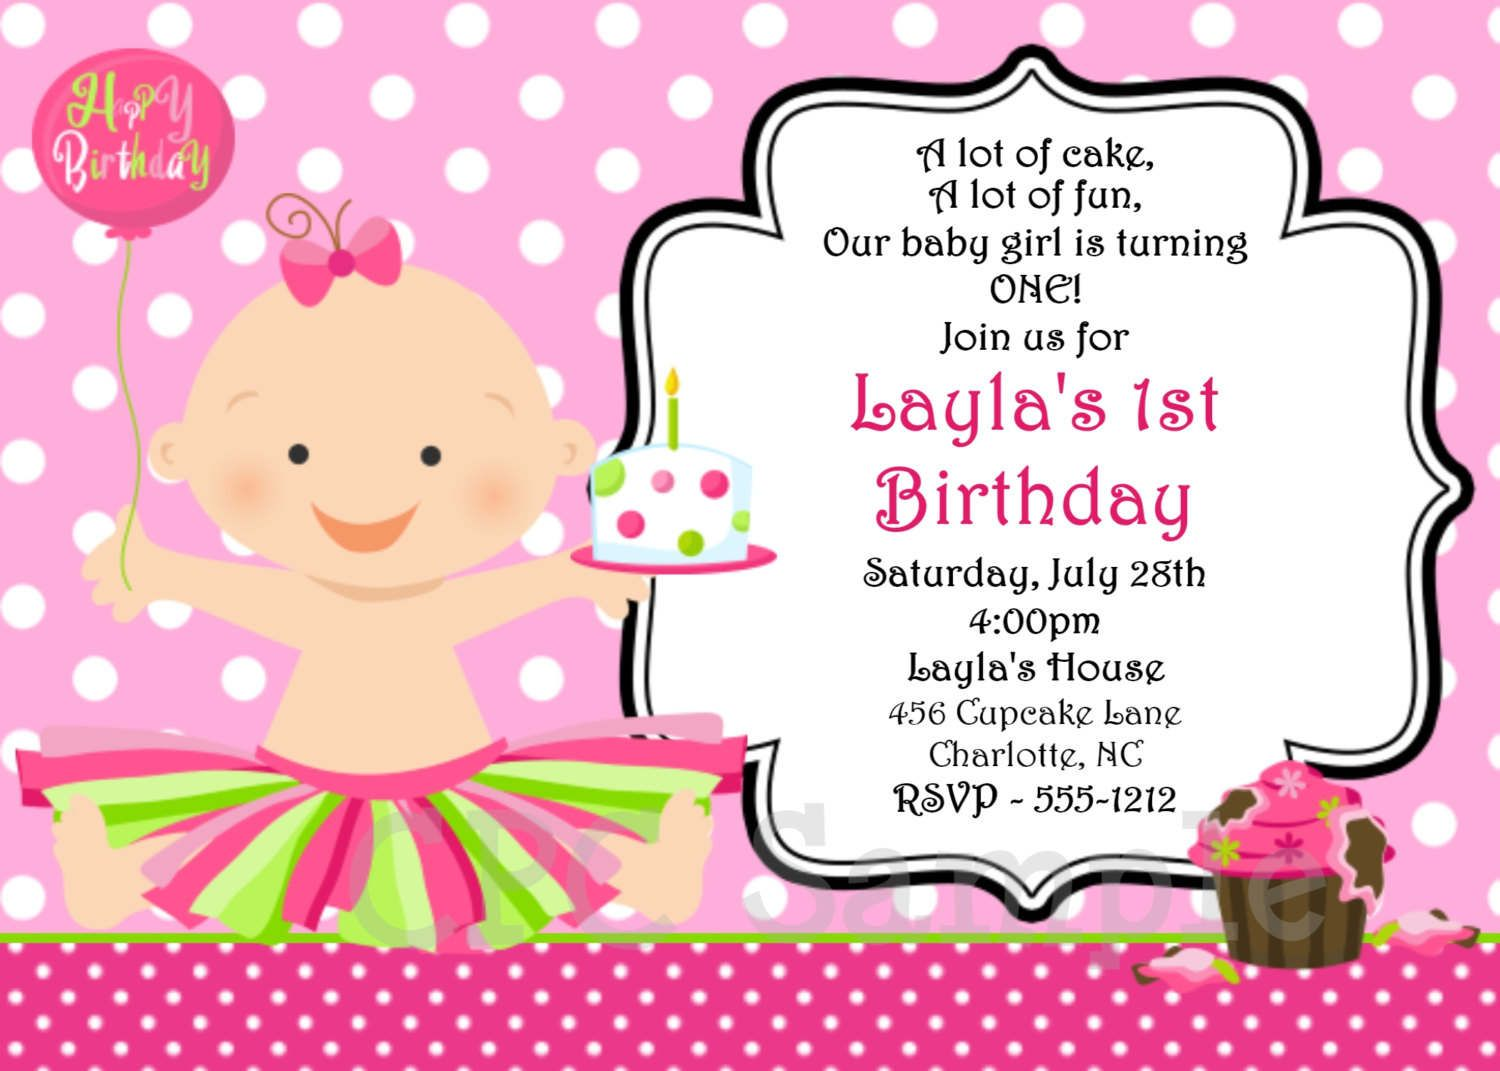 Free St Birthday Invitation Templates Printable InviteTown - Free 1st birthday invitation templates printable